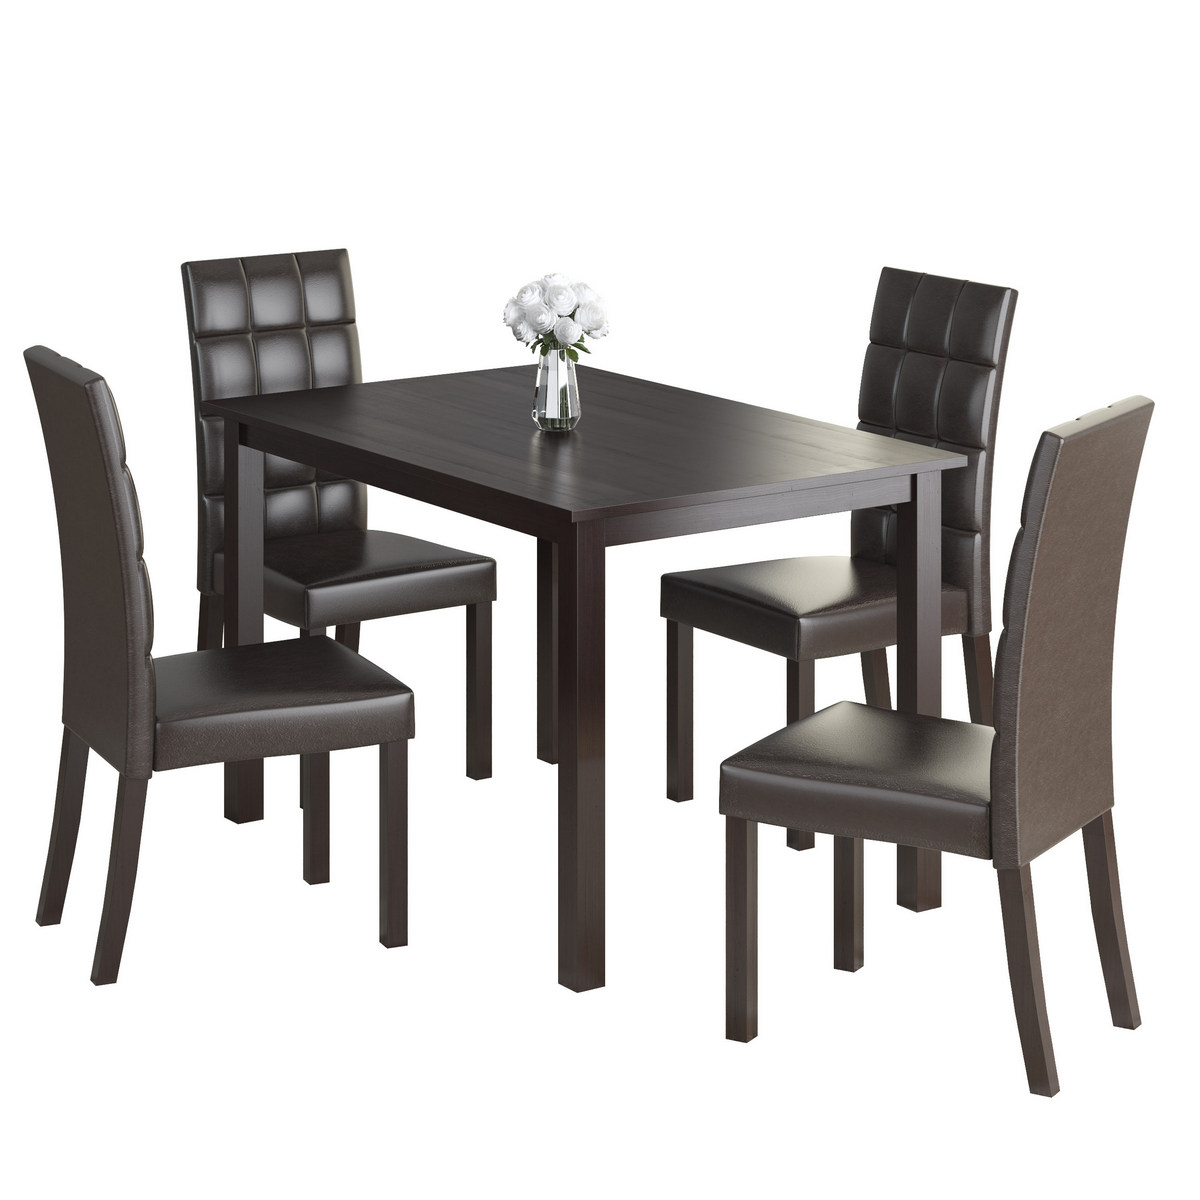 Dining Set Dark Brown Leatherette Seats